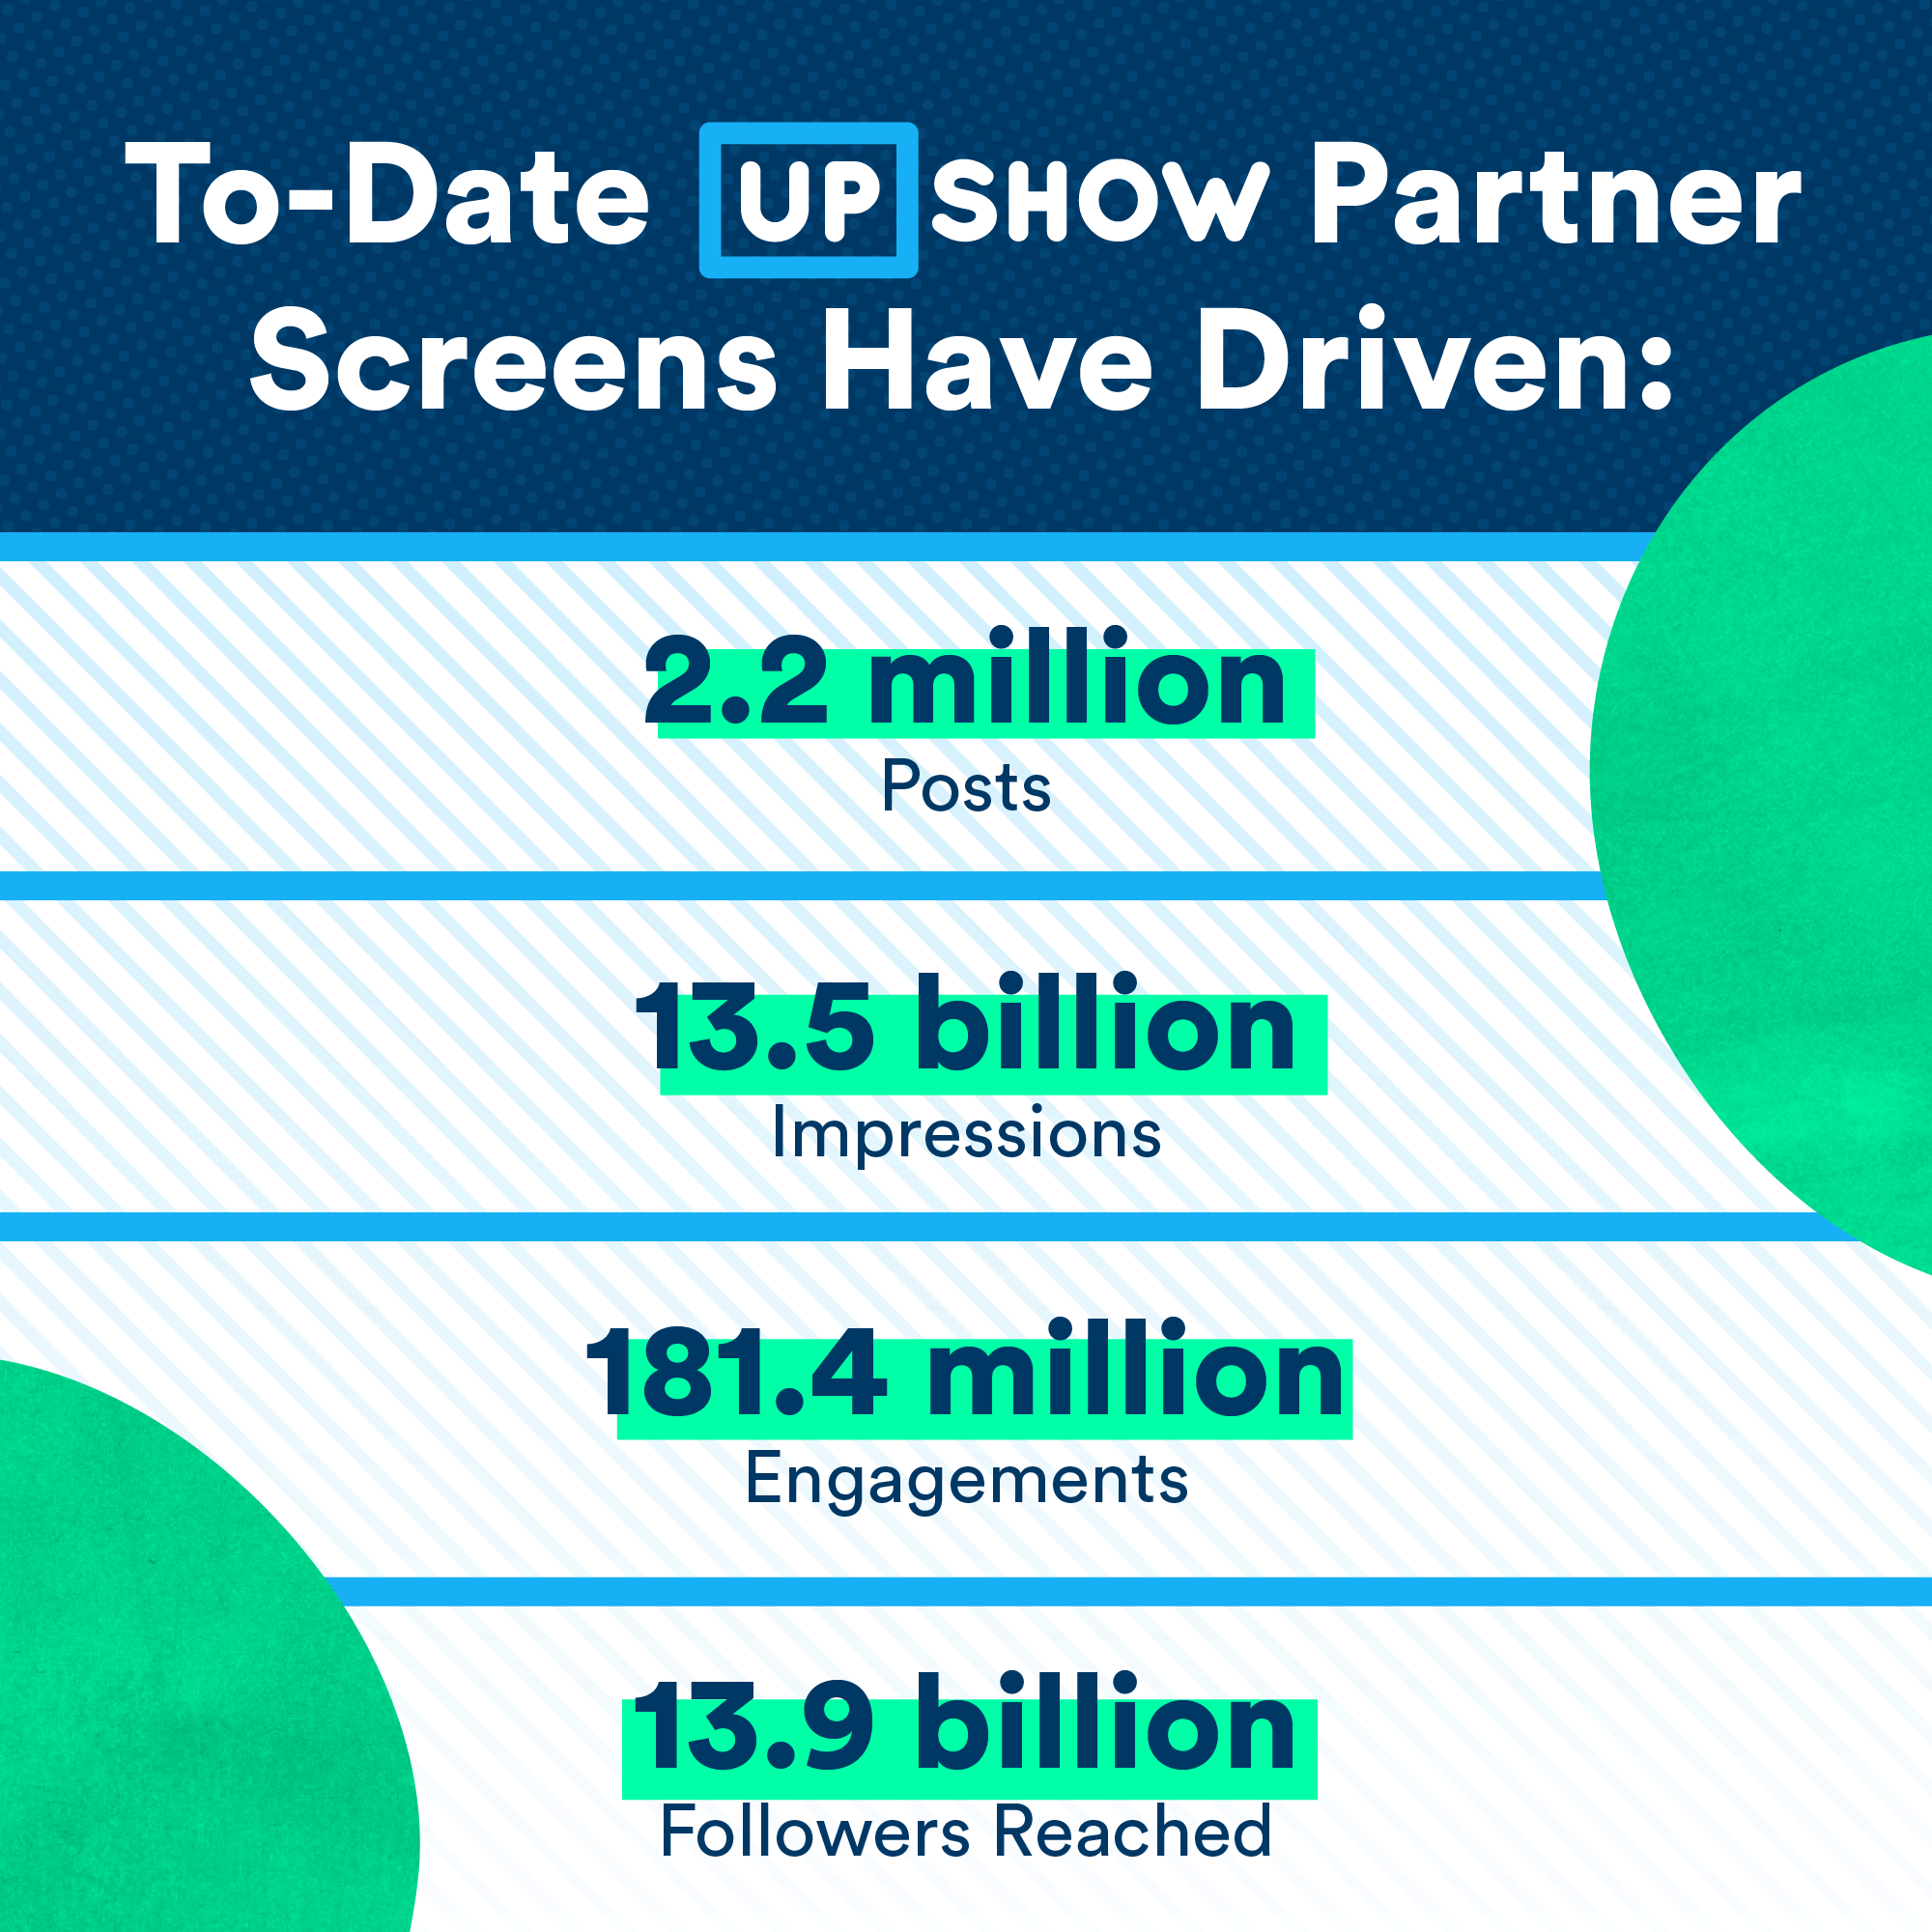 upshow_engagement_2019.png